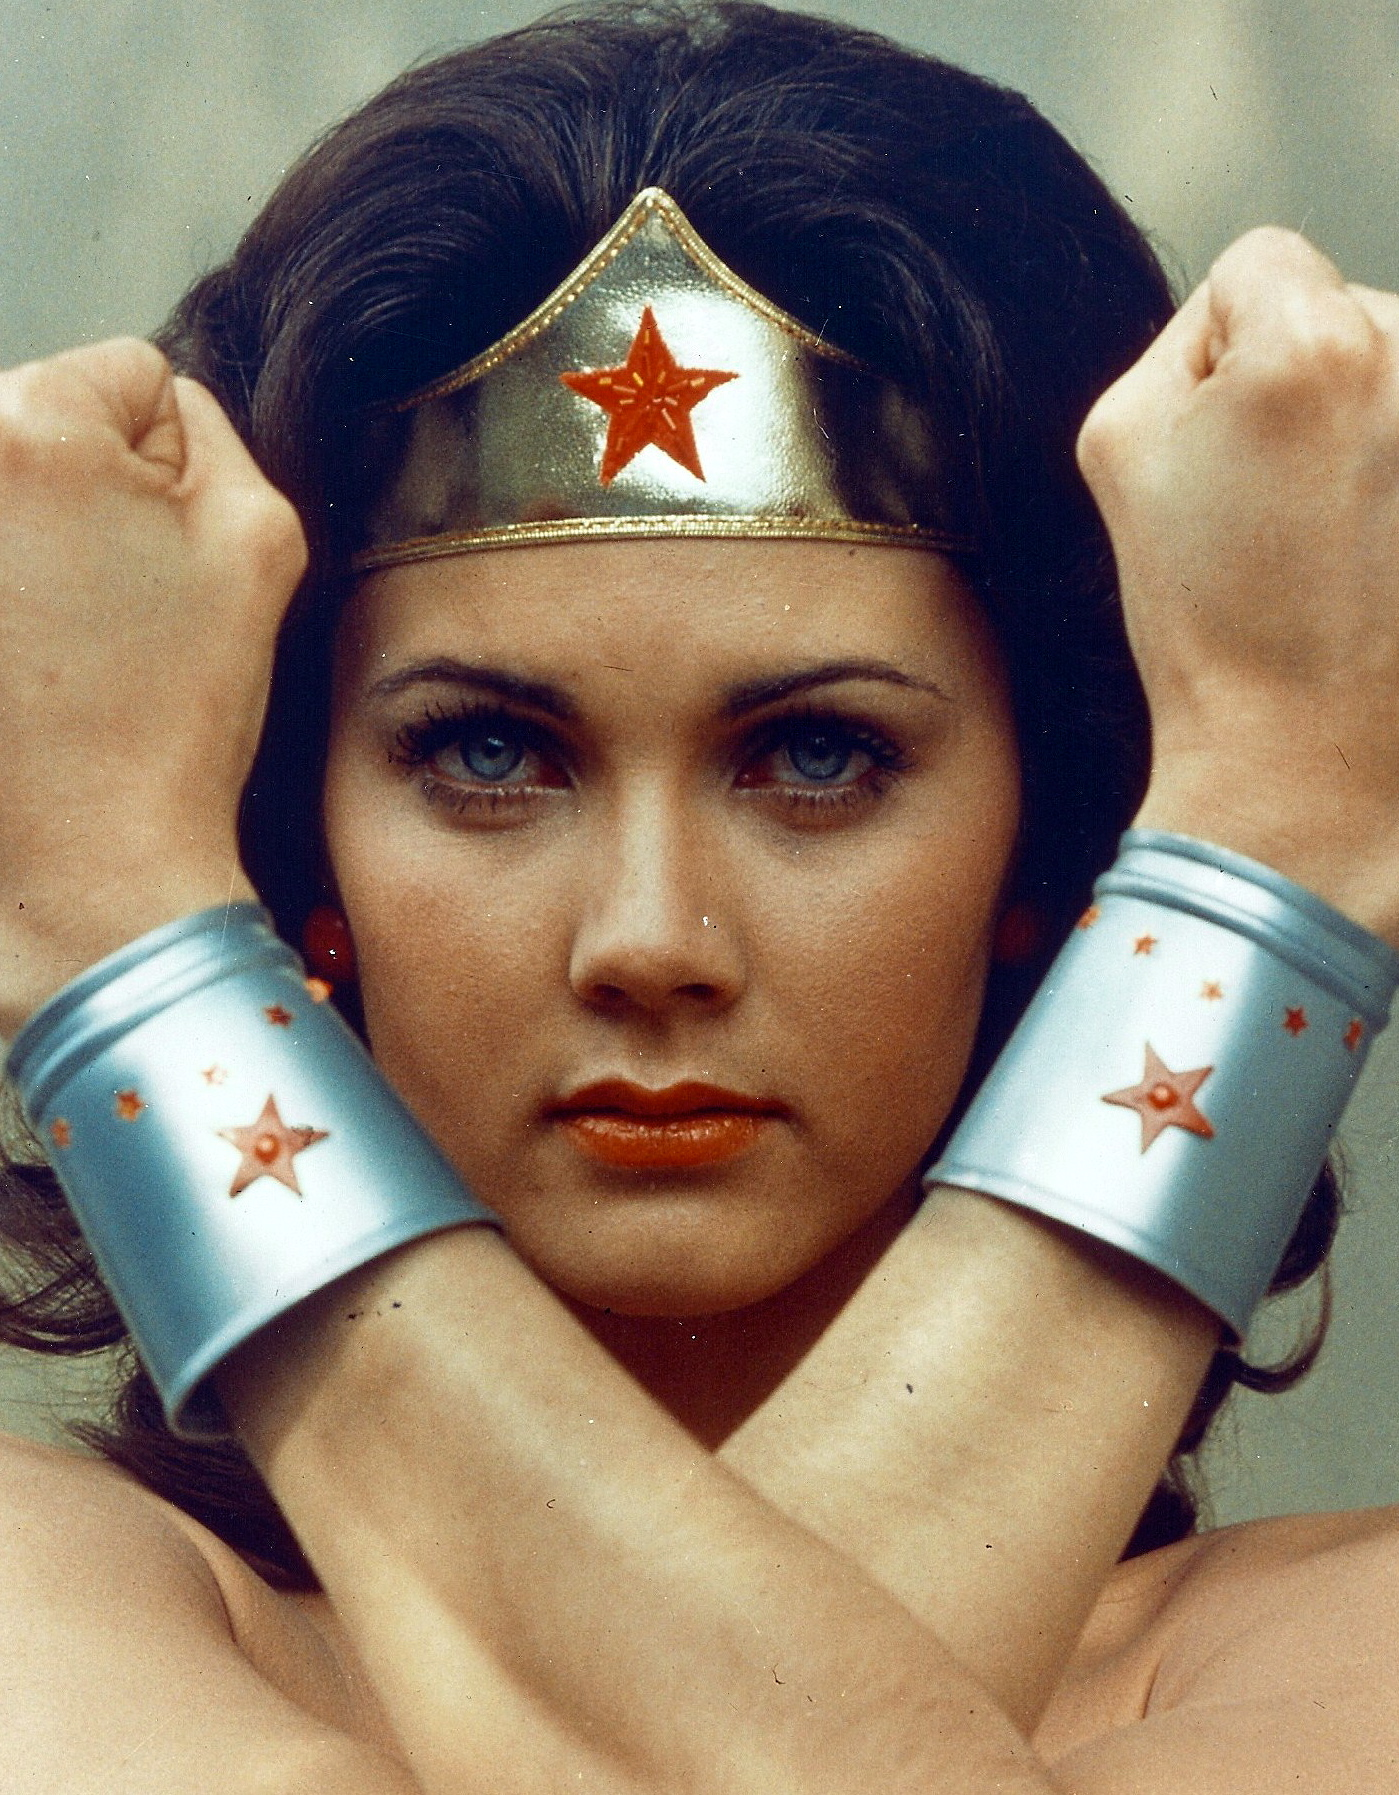 Going from Wonder Woman to a Woman of Wonder